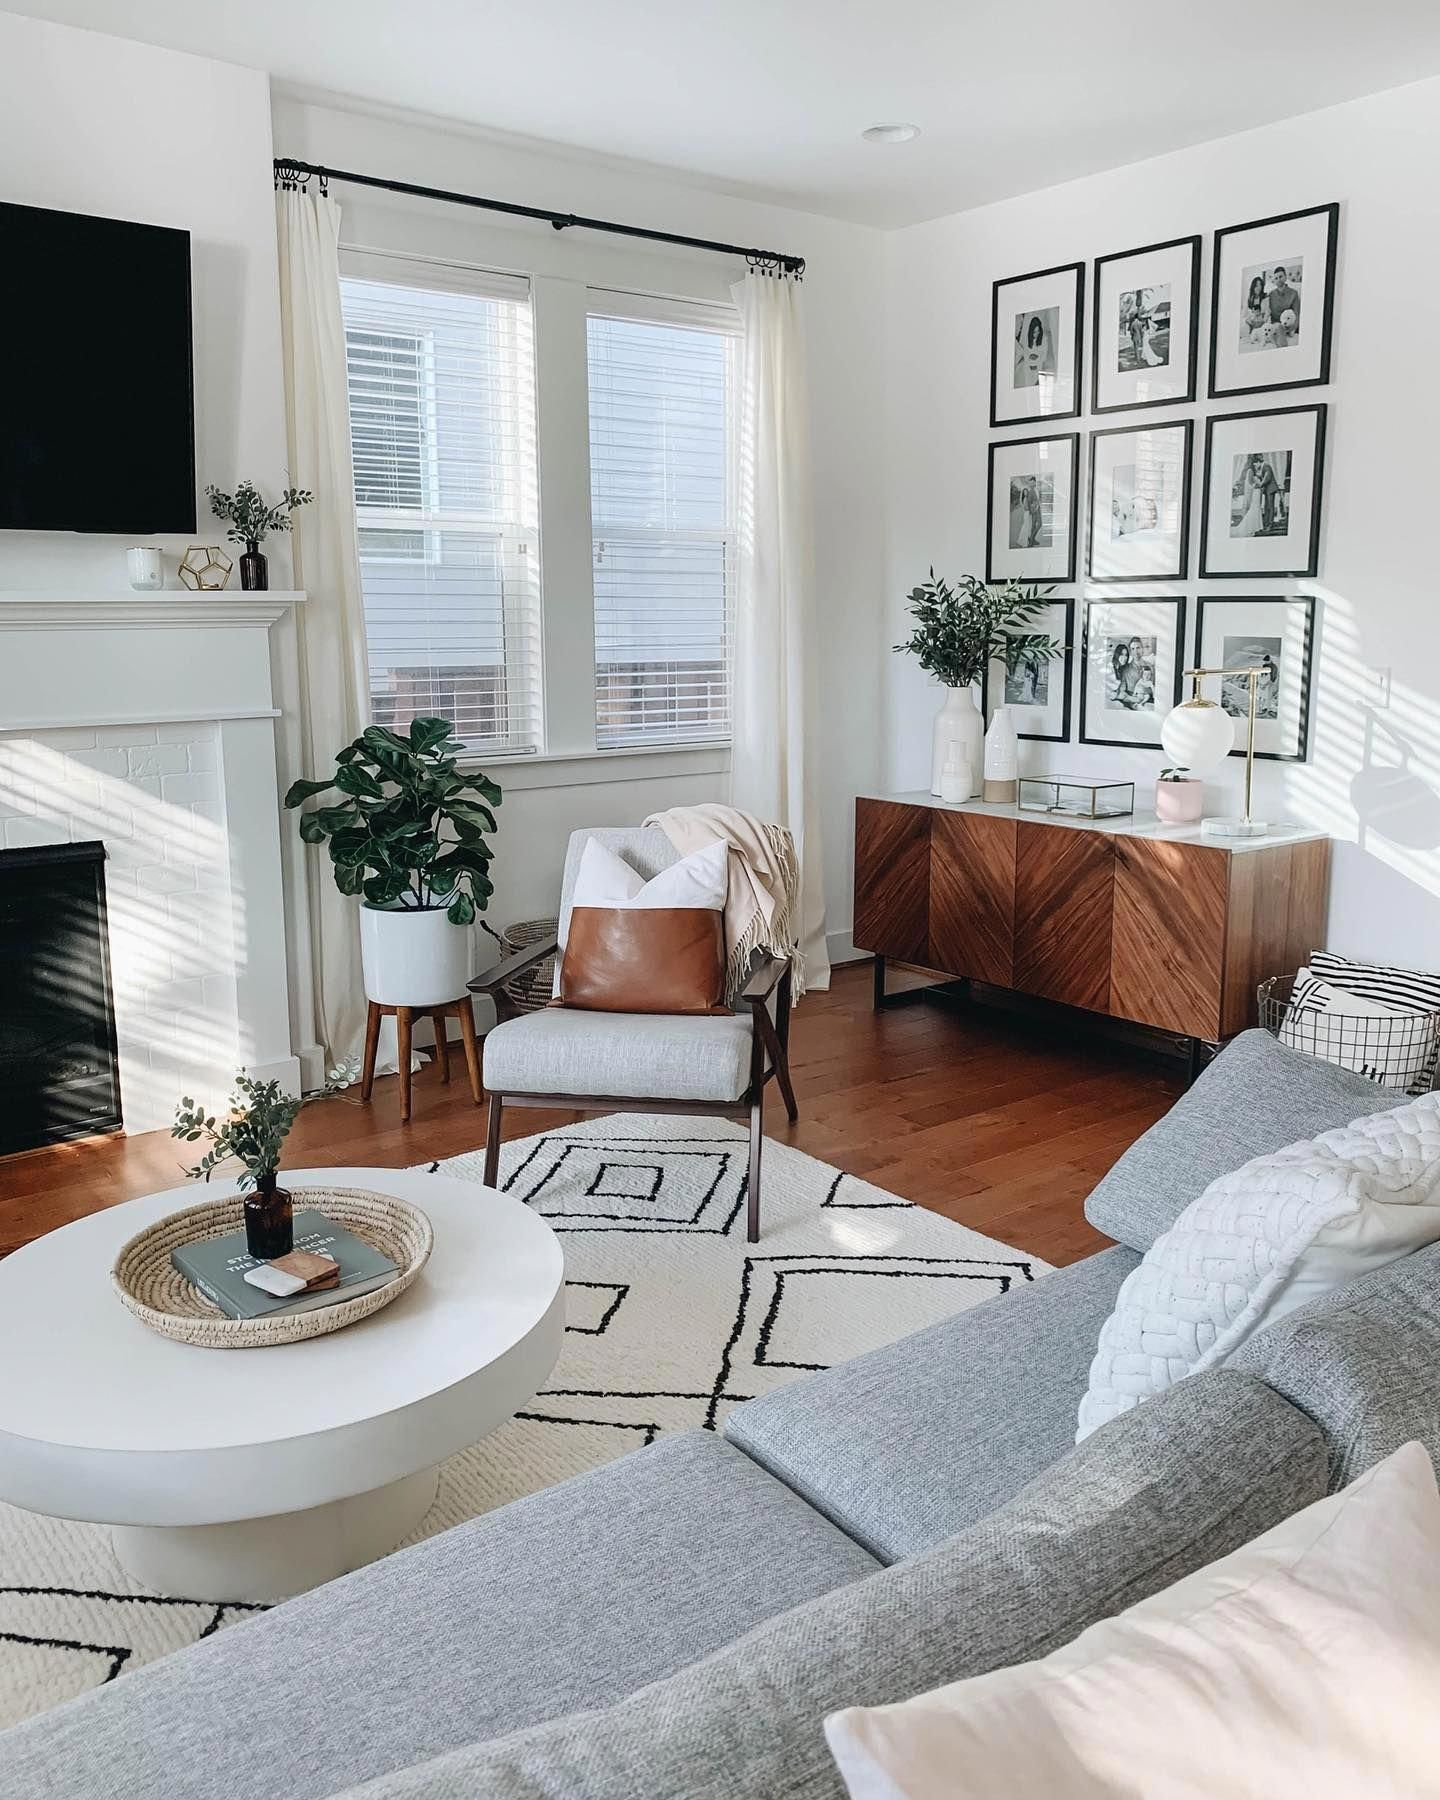 How To Build The Living Room Stairs In 2020 Apartment Decor Stairs In Living Room Living Room Inspo